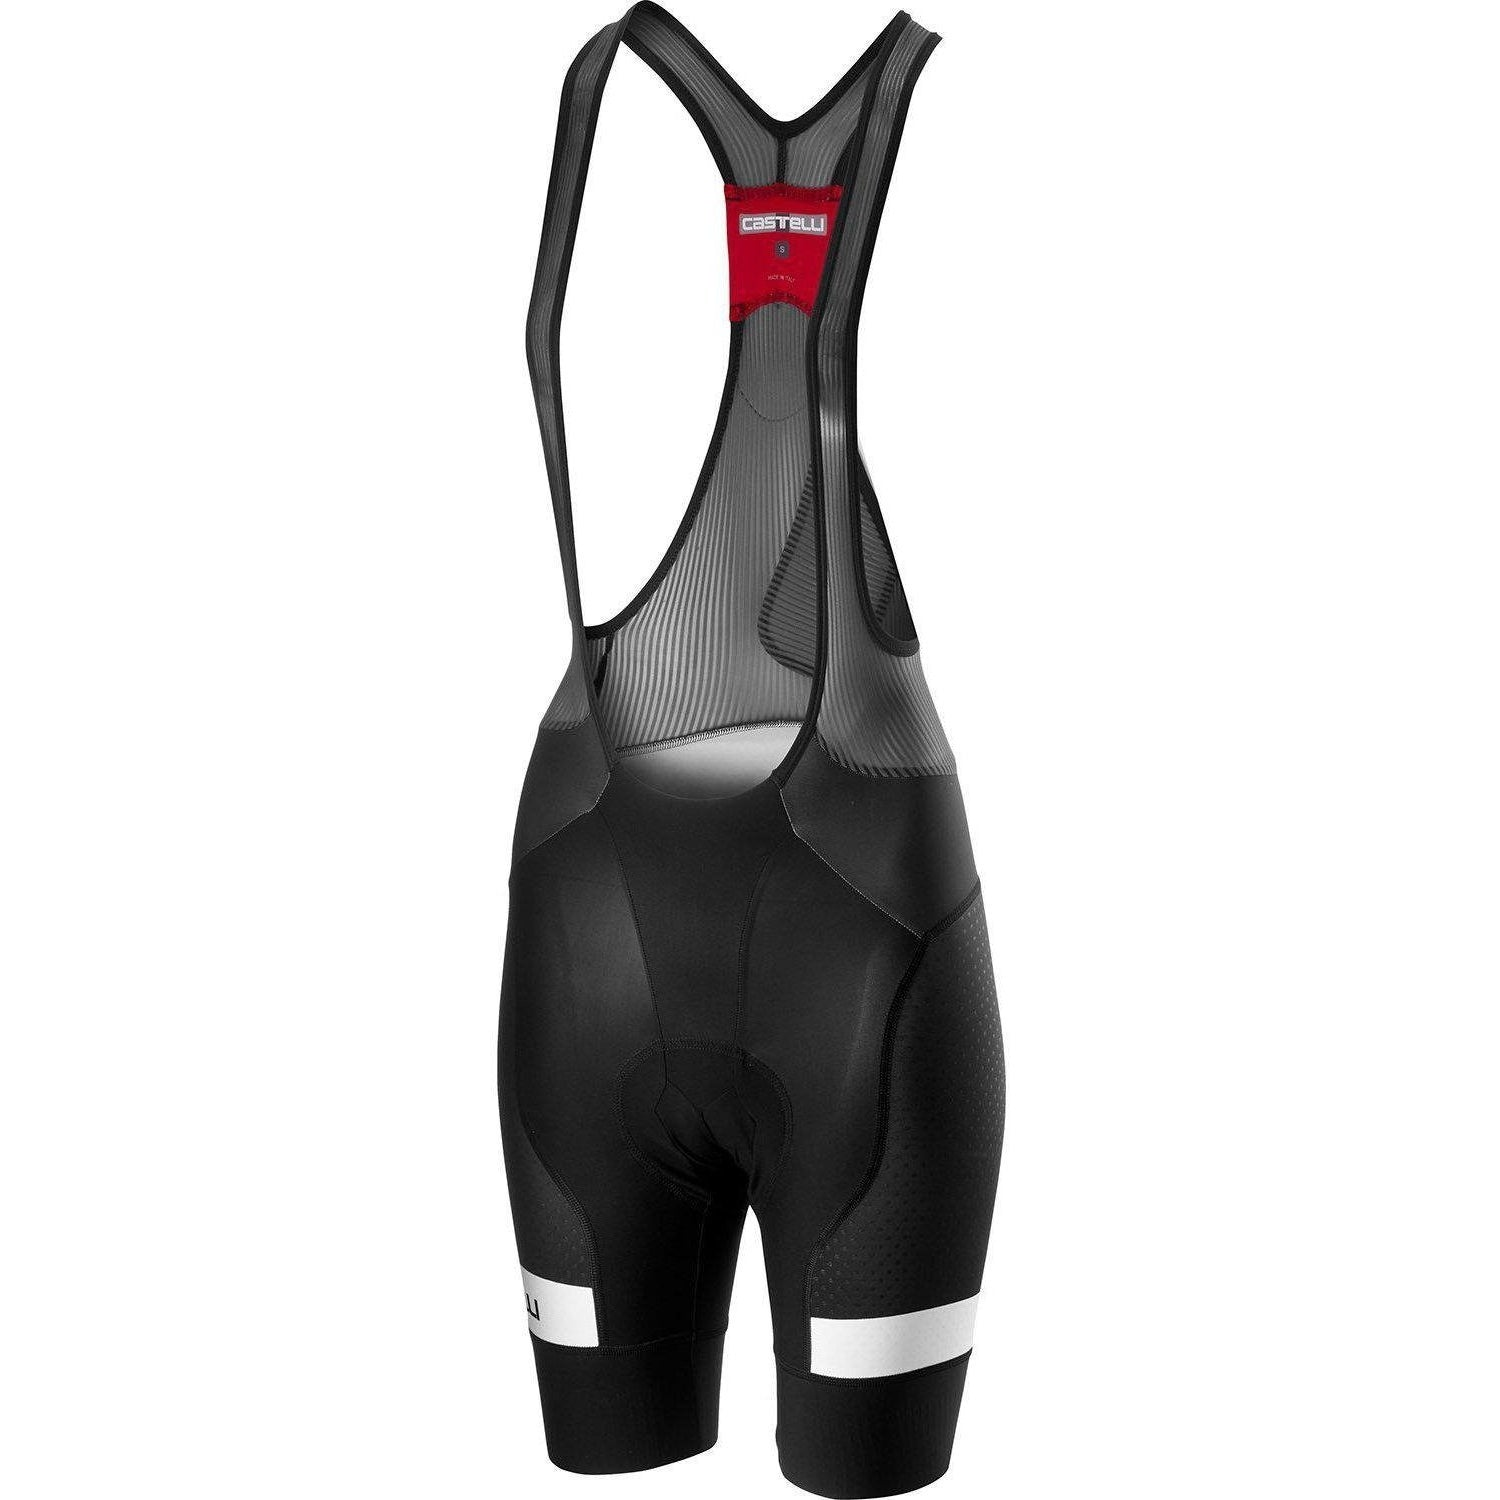 Castelli-Castelli Free Aero Race 4 Team Women's Bib Shorts-Black/White-XS-CS190771011-saddleback-elite-performance-cycling